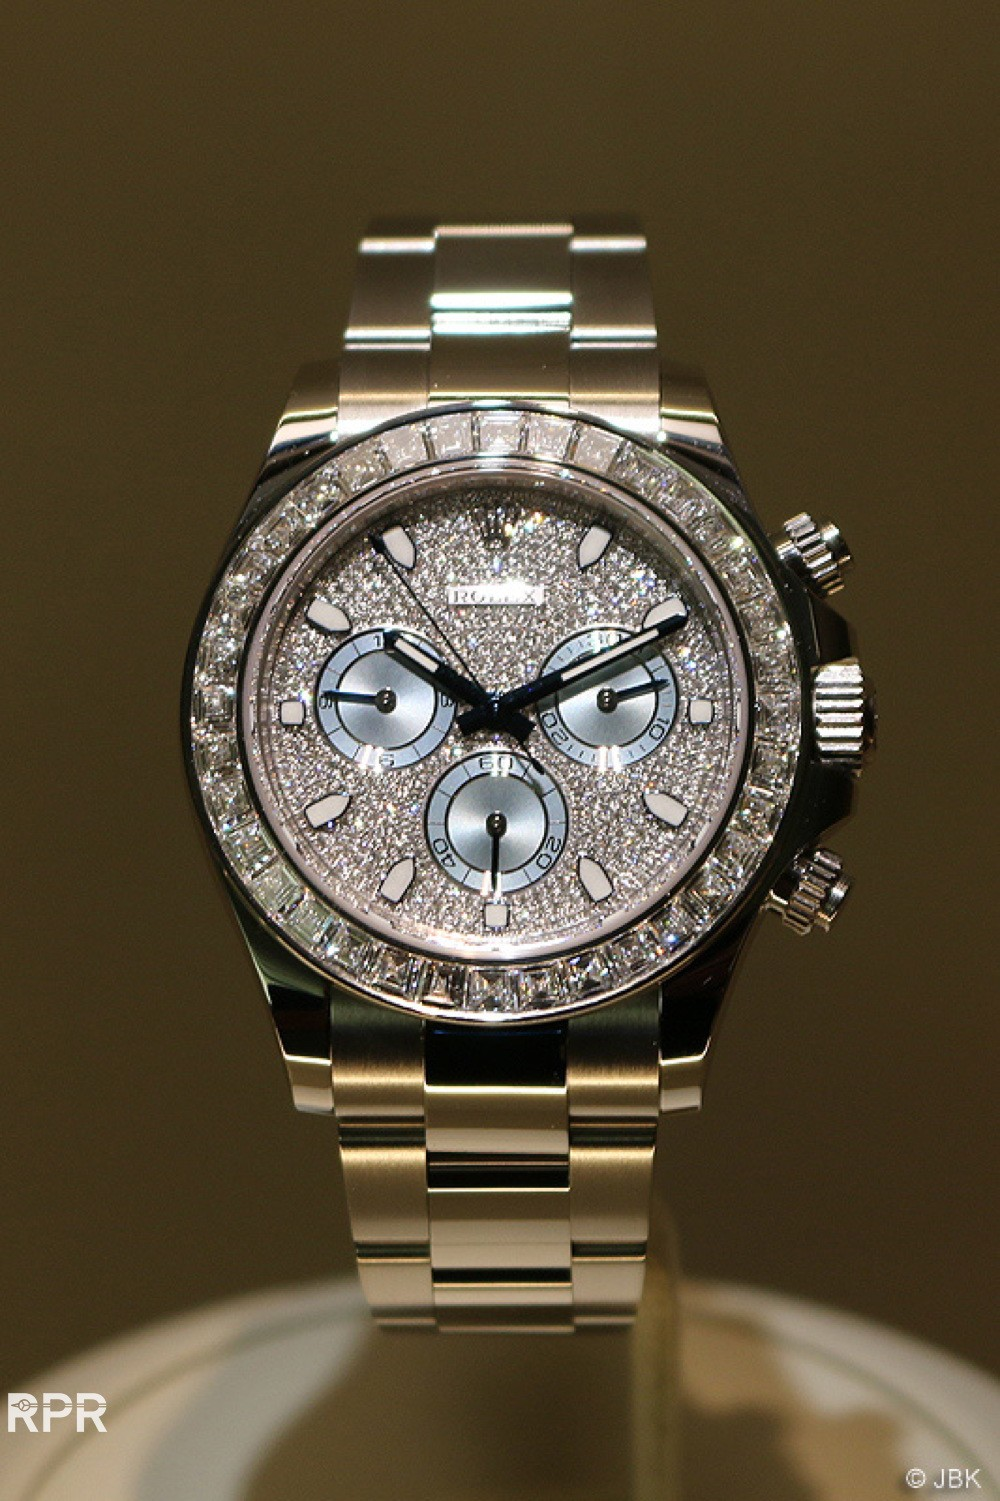 RPR_basel2014_diamond_daytona